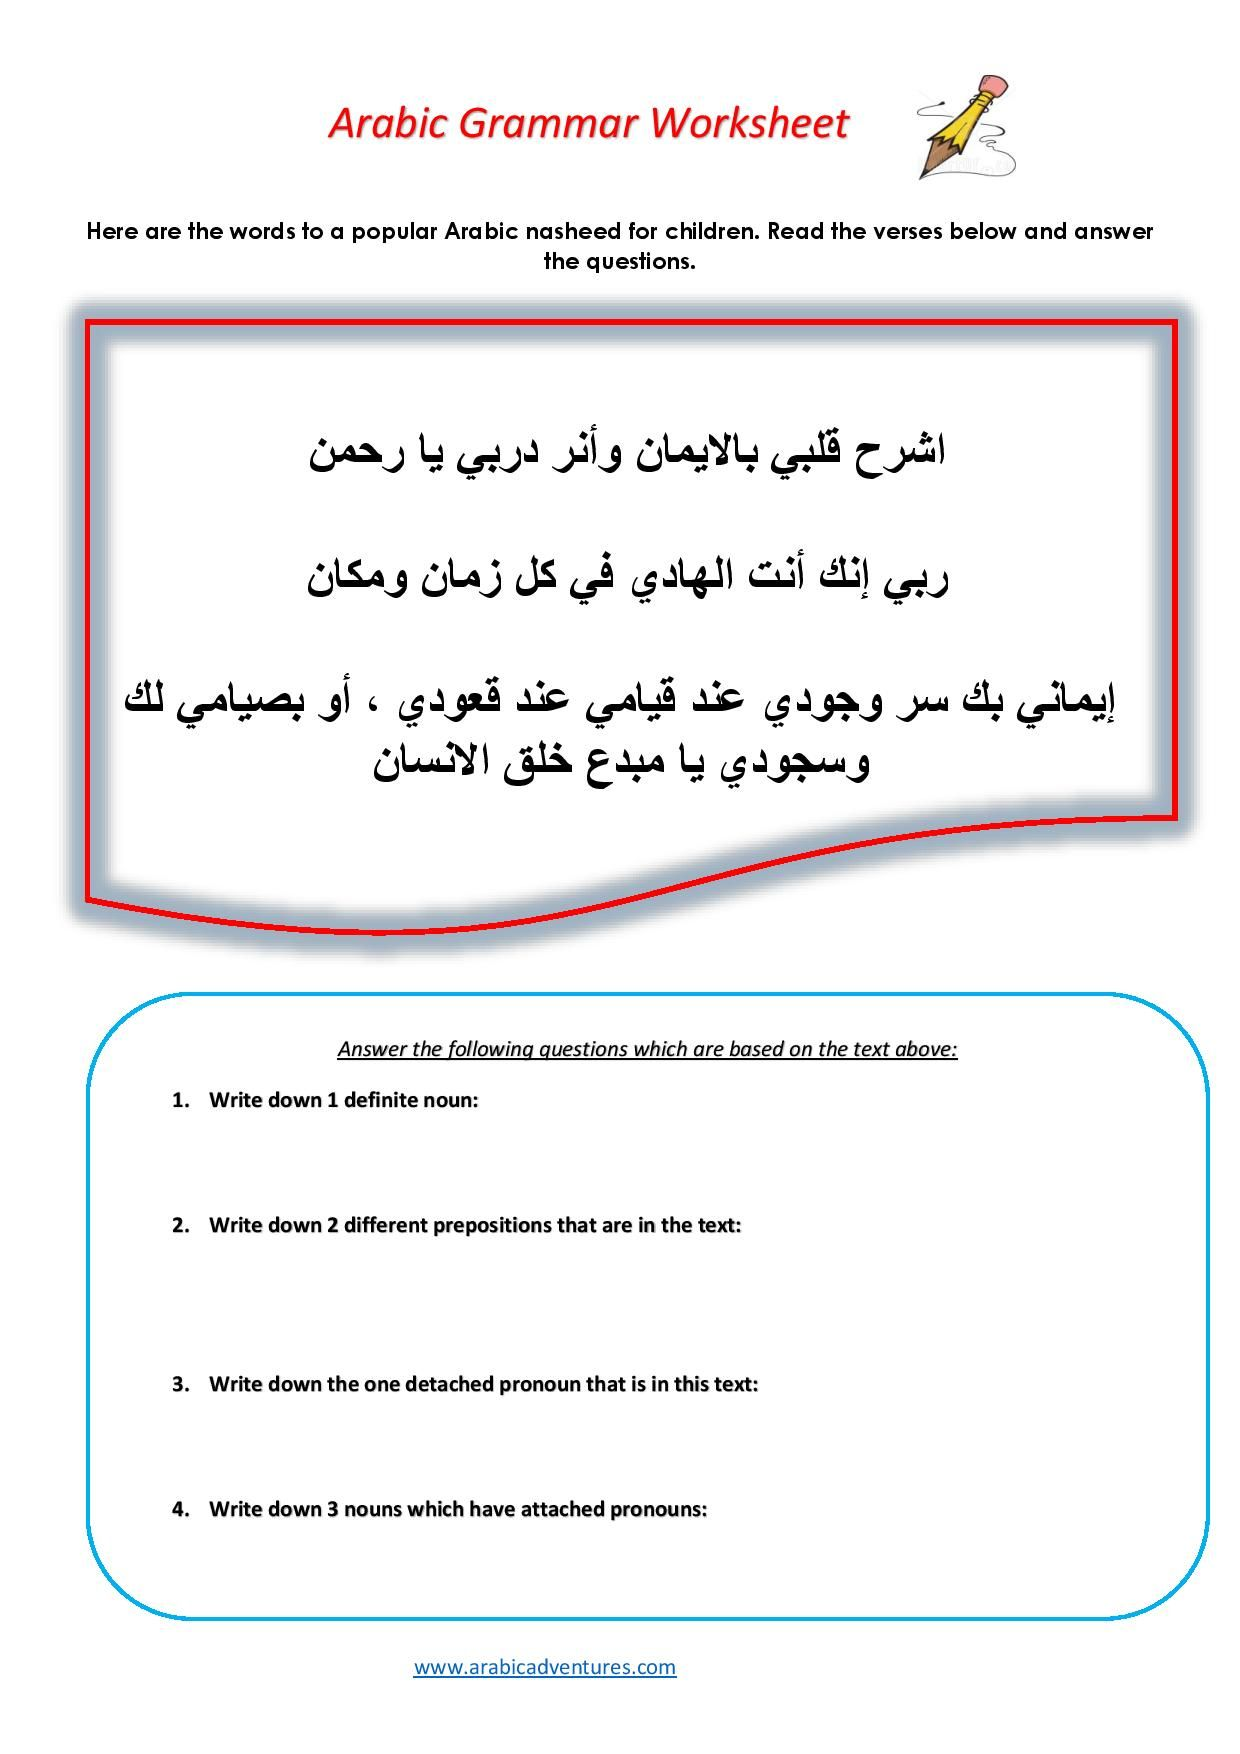 Arabic Grammar Review Worksheet Using A Popular Nasheed For Children In Arabic Get The Free